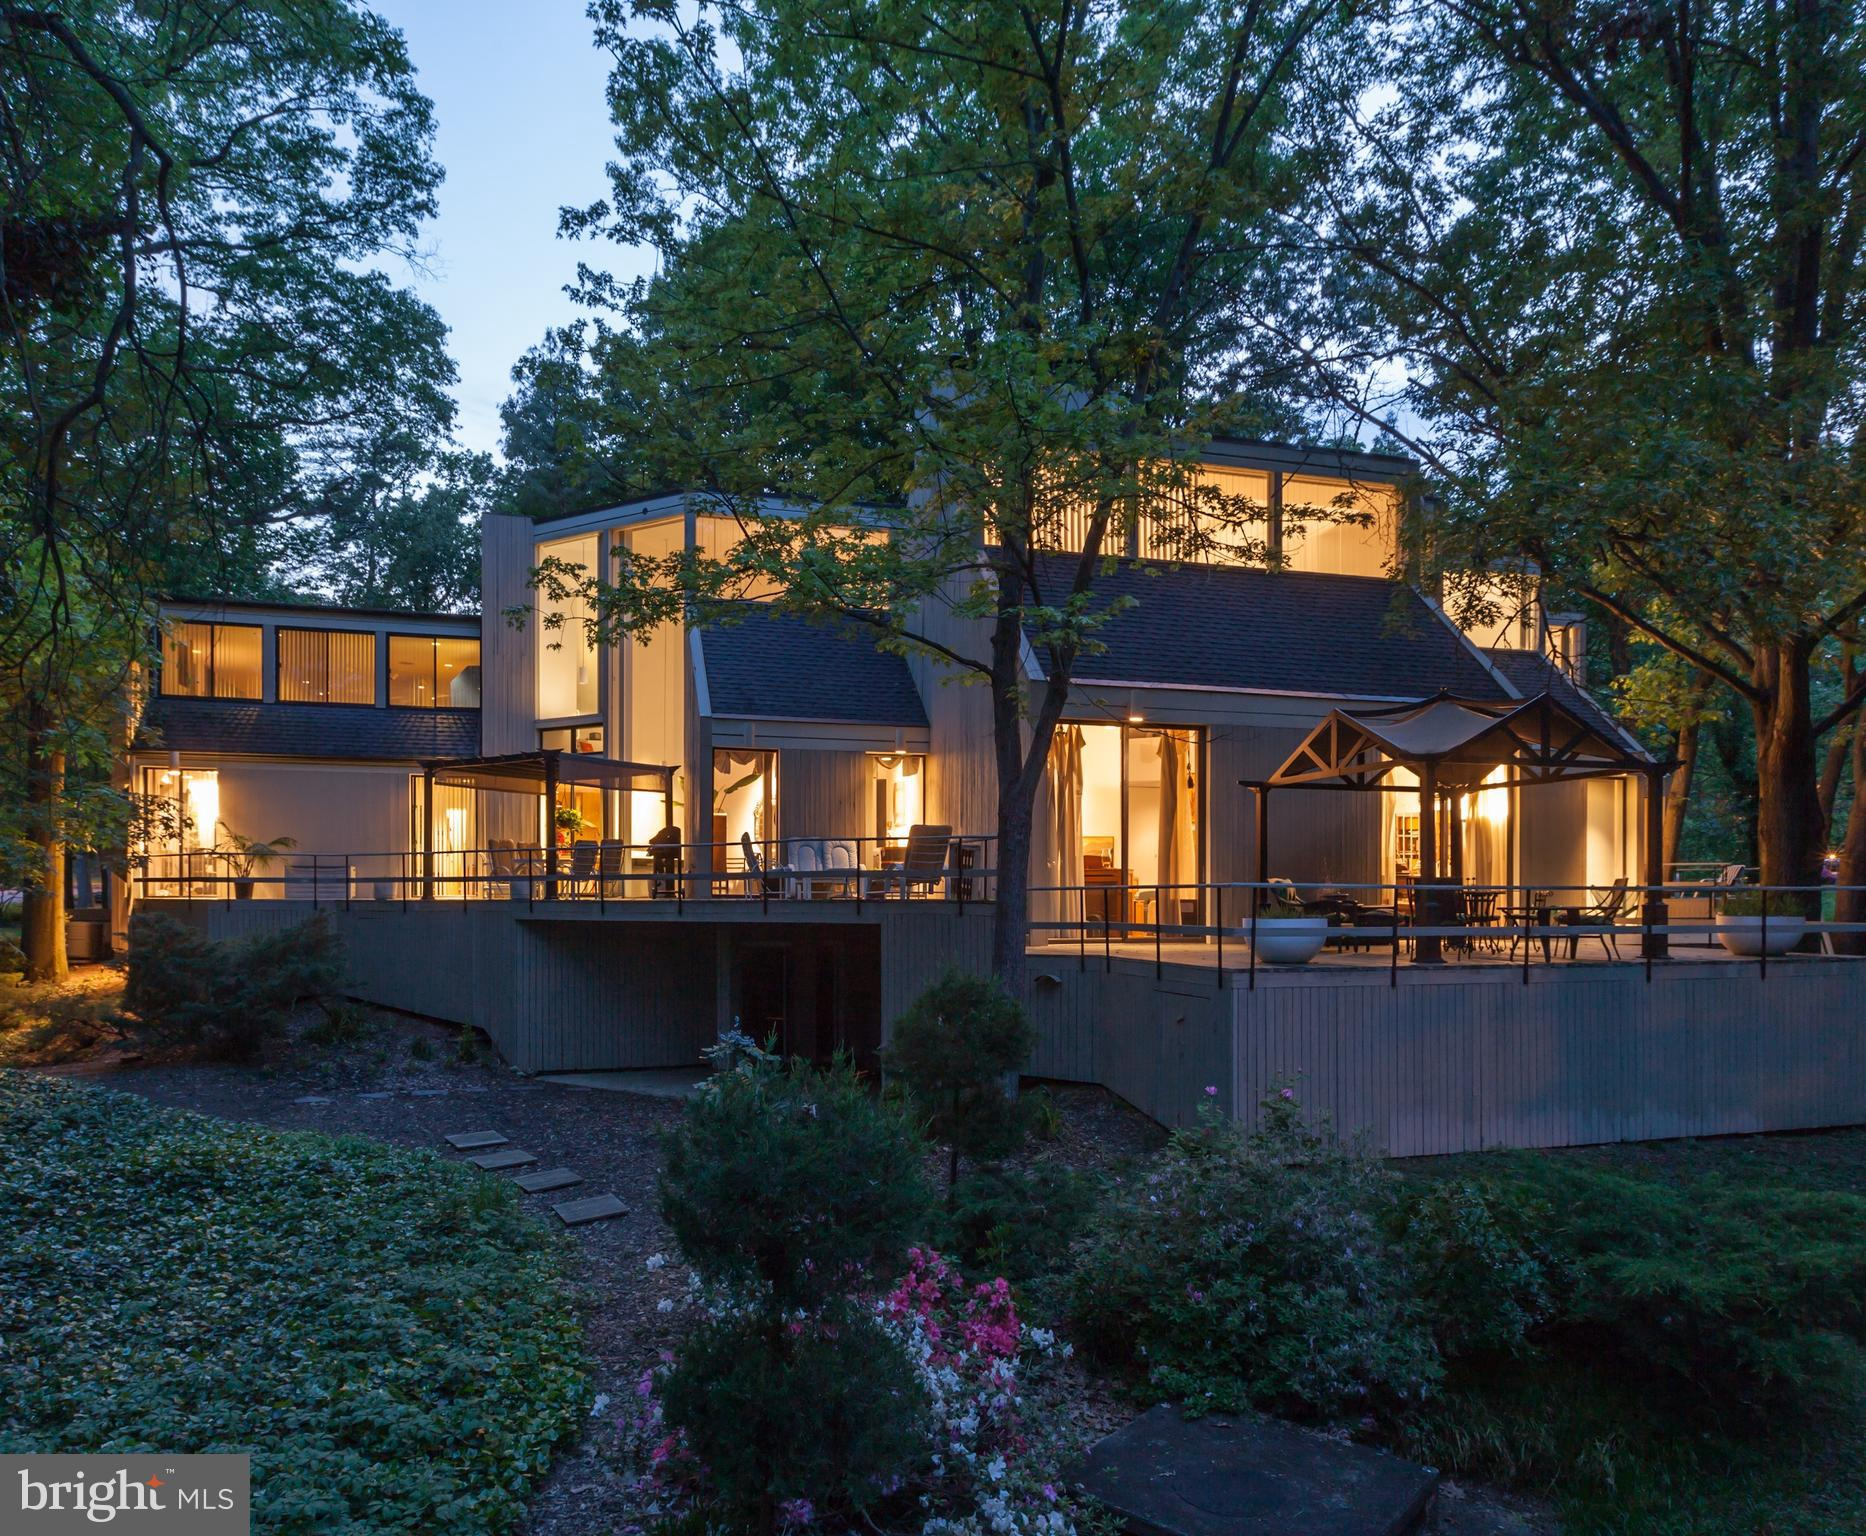 A notable, stunning modern home located on one of the most beautiful streets in Alexandria, Virginia. Designed by celebrated architect Hugh Newell  Jacobsen, FAIA., the current owners have very carefully modernized the home while complimenting, preserving, even enhancing the incredible architectural details. Every bathroom, kitchen, and major utility are all-new, including brilliant material selections, paired with luxurious comforts like the efficient heated floors and contemporary fixtures. An undeniable jewel for the design enthusiasts who covet authentic architecture and modern luxury, at once.